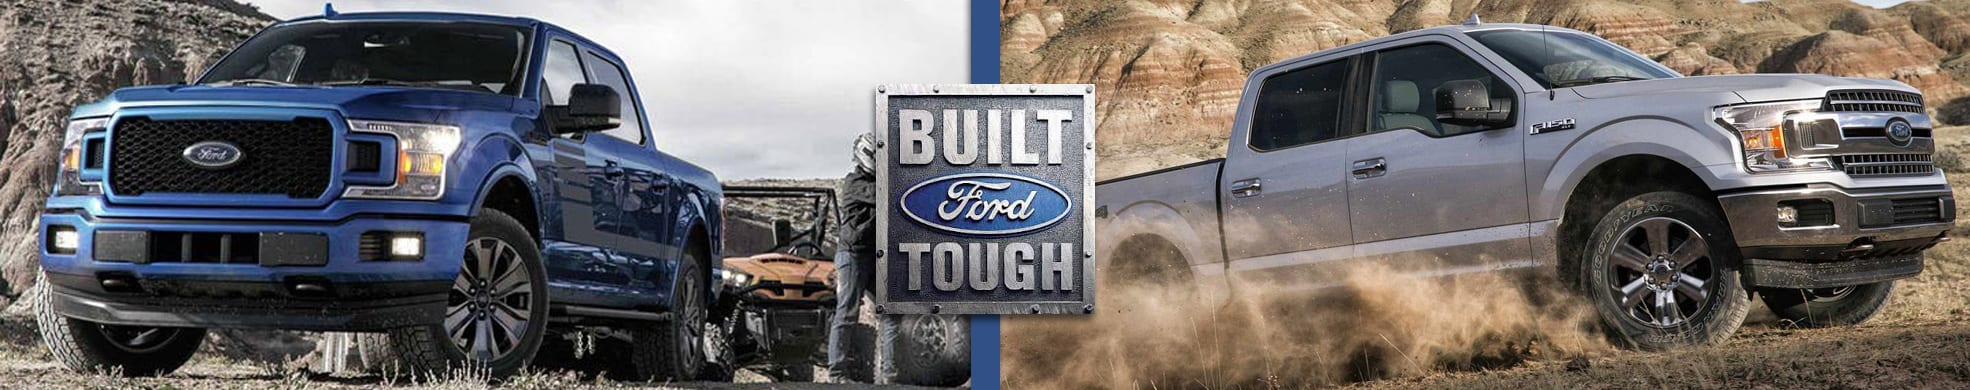 Built Ford Tough Is Back, & Tougher Than Ever!